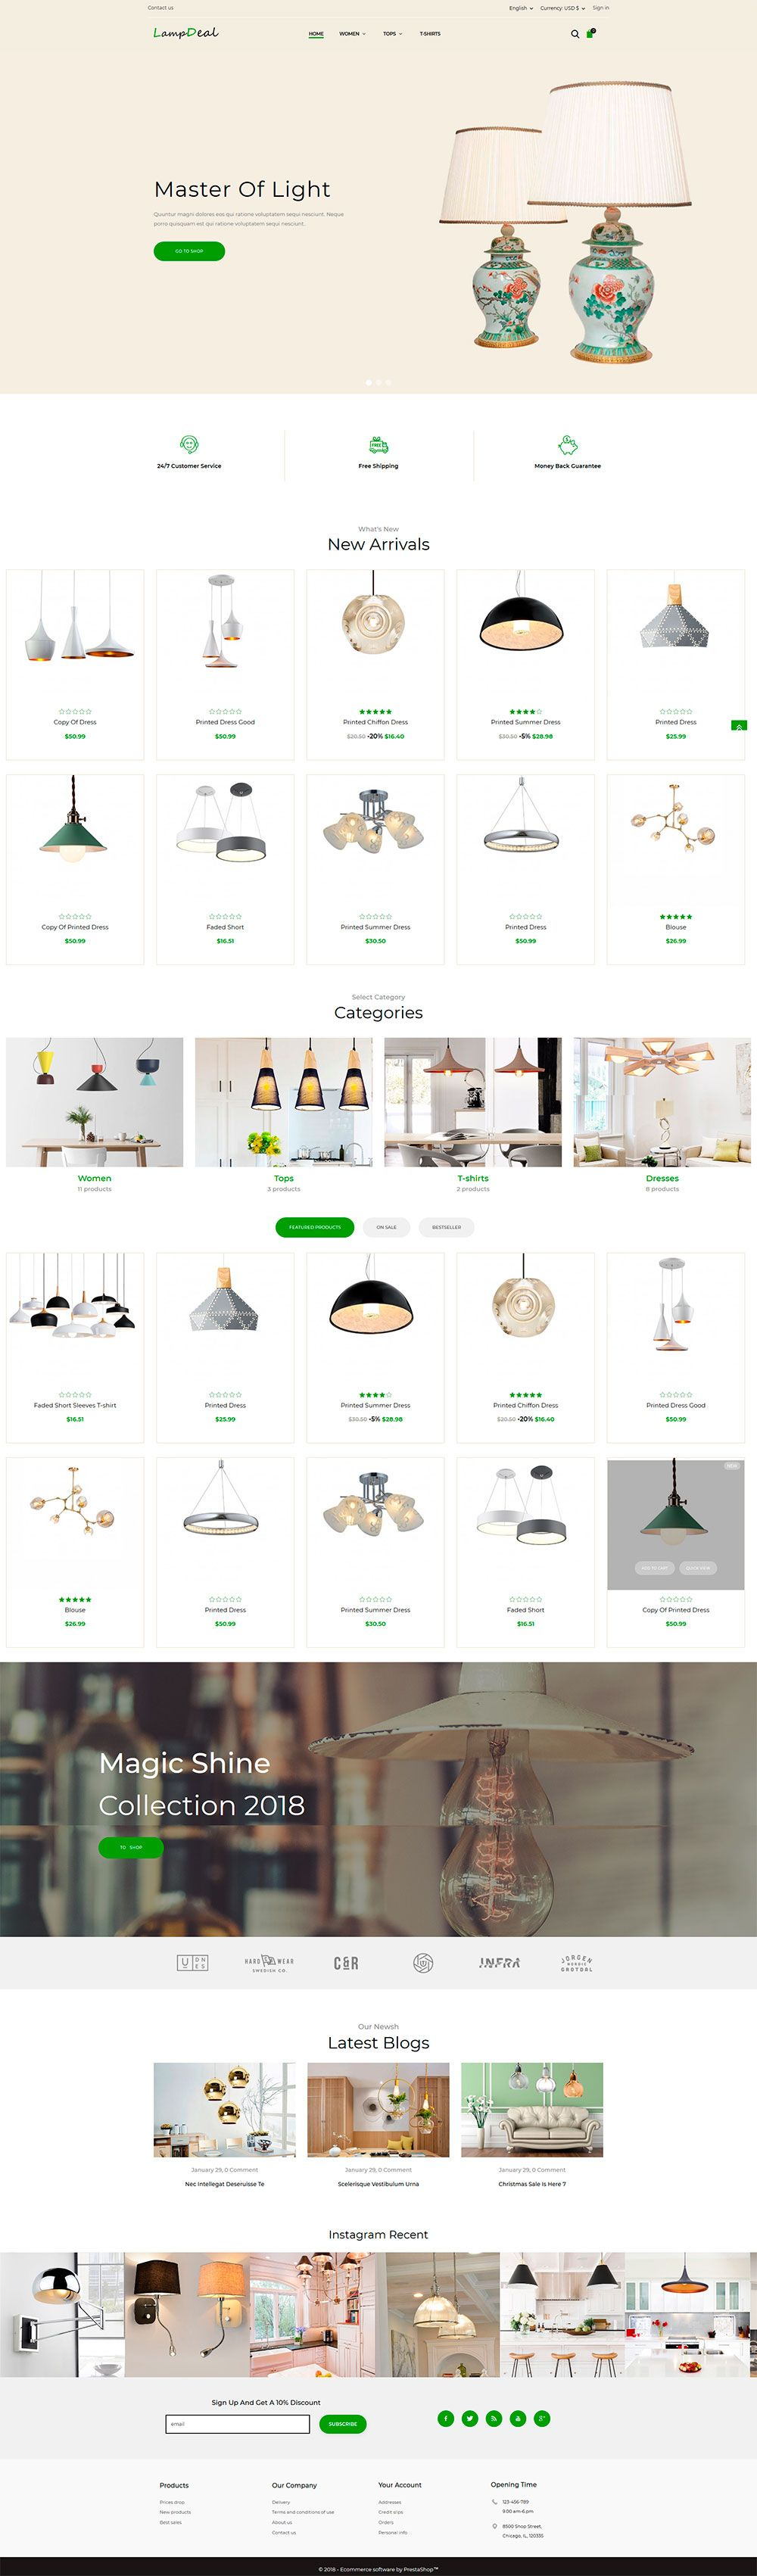 LampDeal Furniture - PrestaShop Theme  Screenshot 1